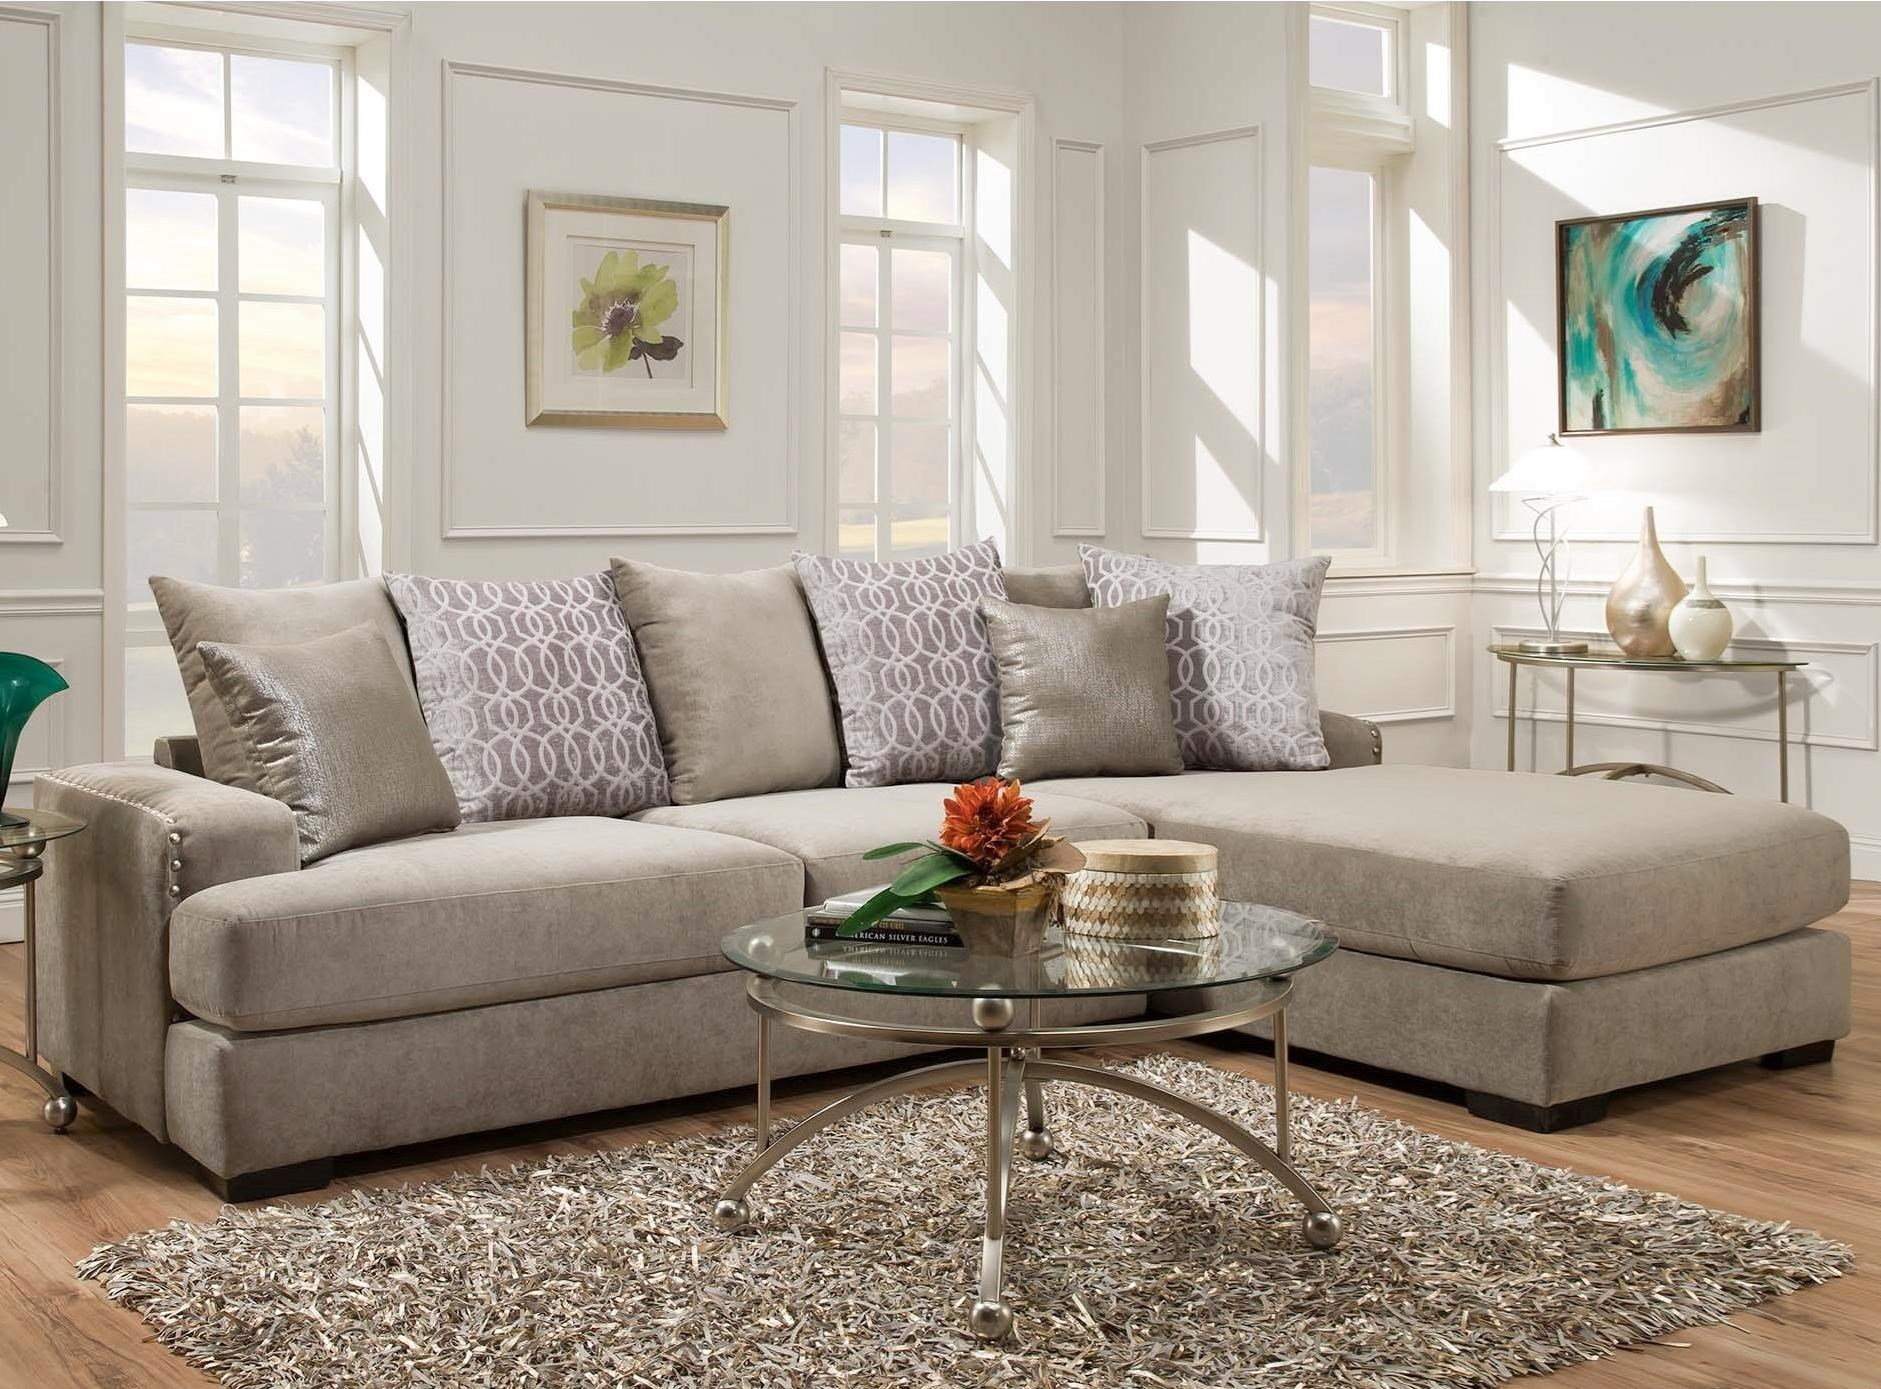 Albany 883 Casual Sectional Sofa With Chaise And Nailhead